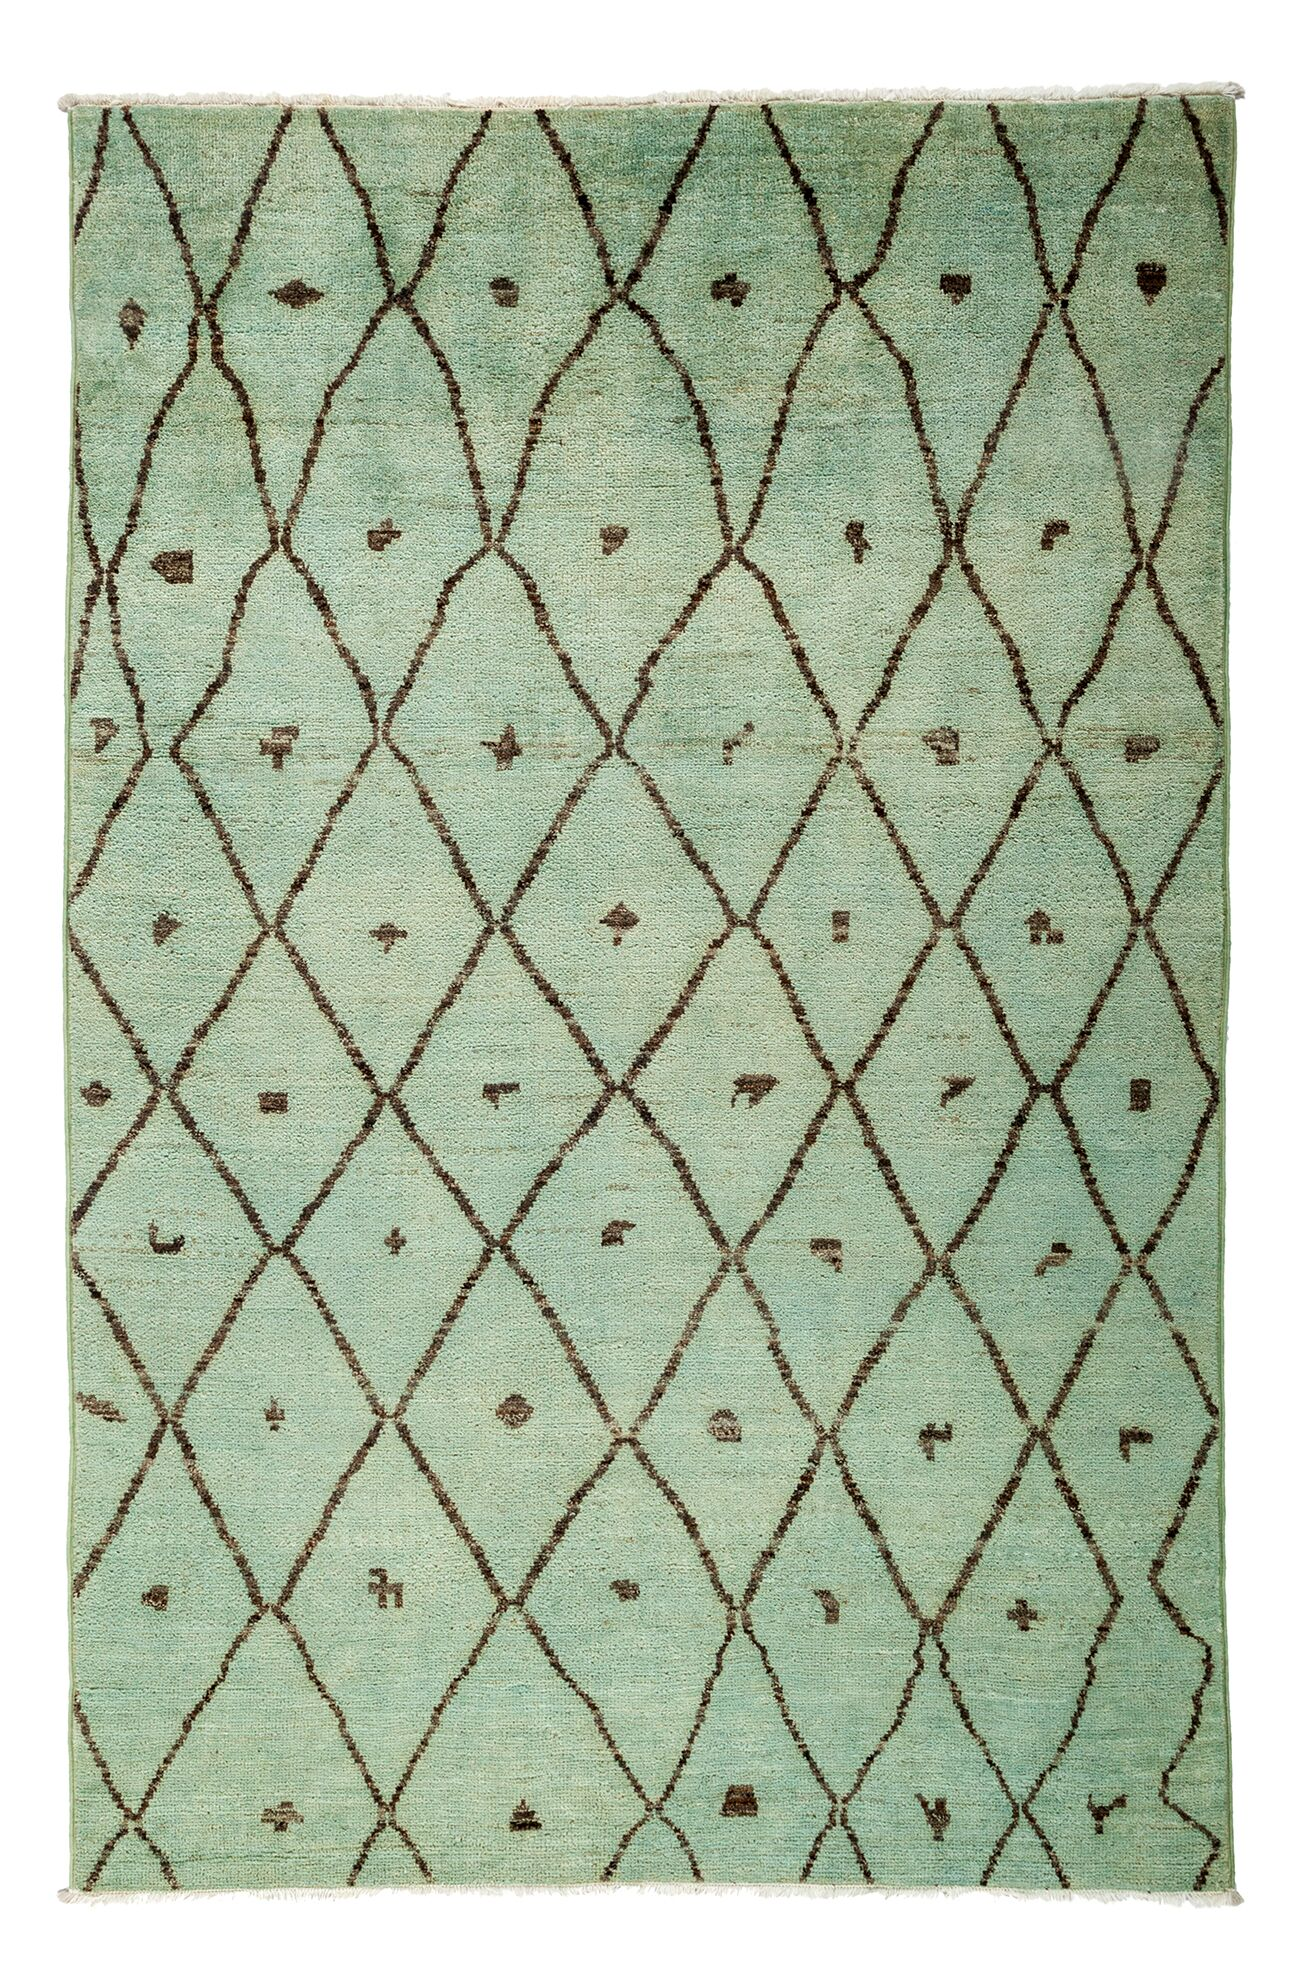 One-of-a-Kind Moroccan Hand-Knotted Green Area Rug Rug Size: 5'10